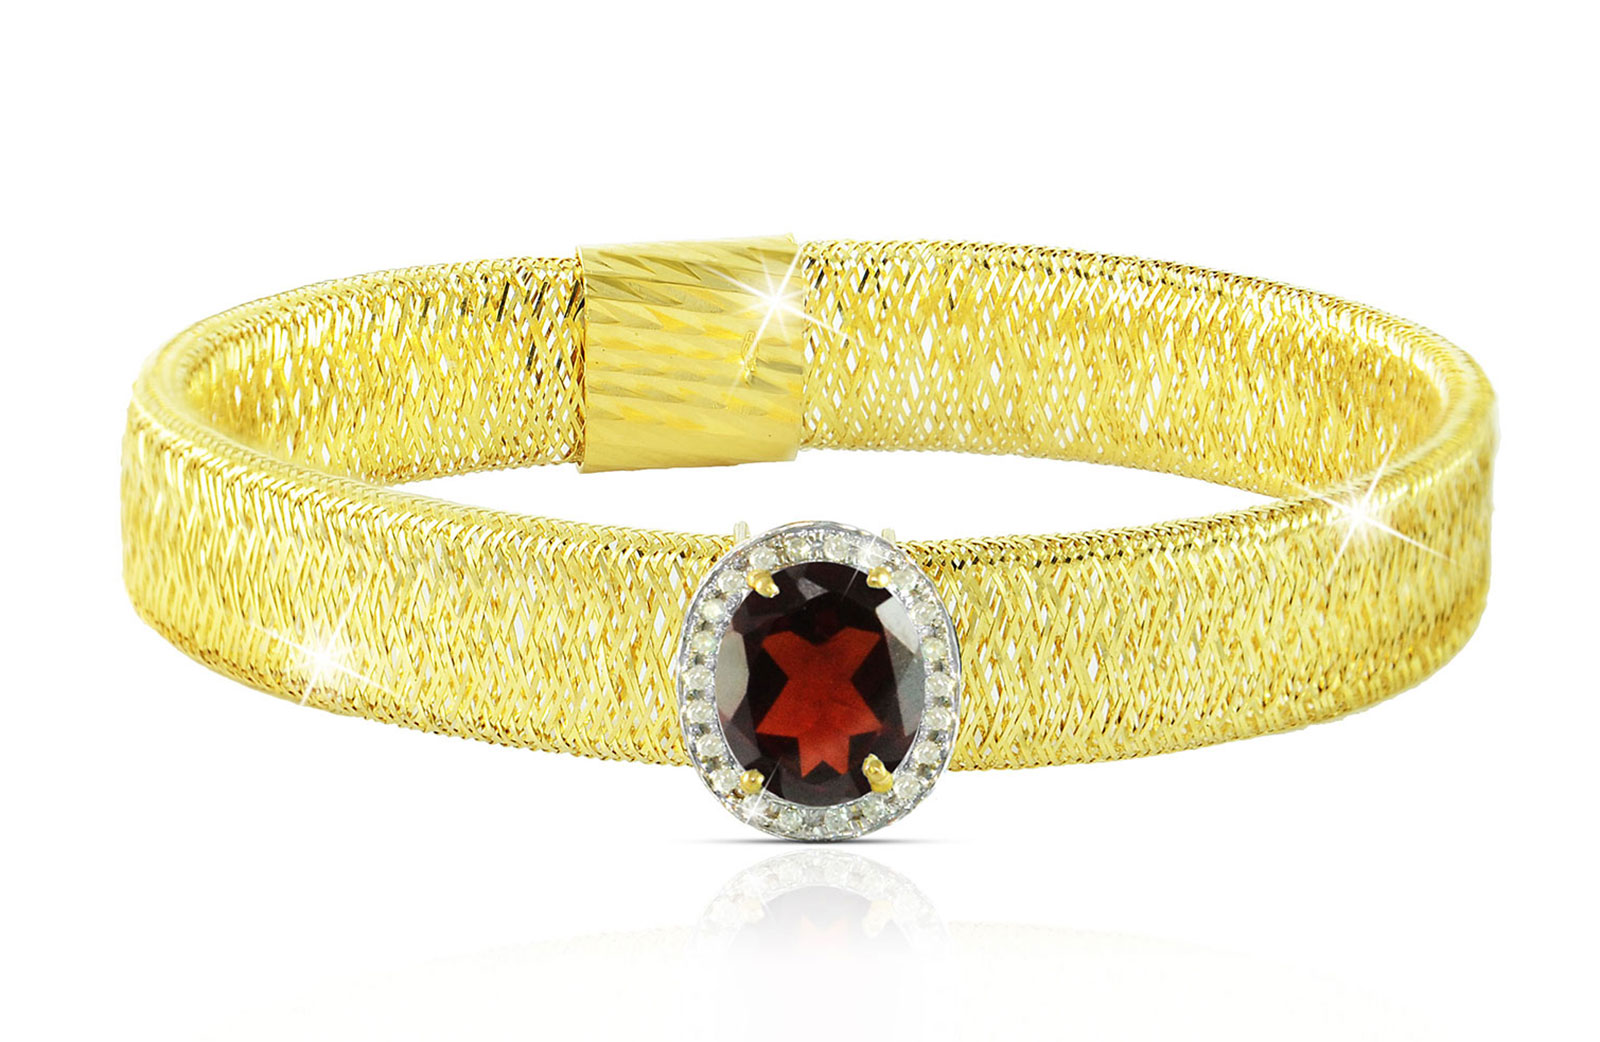 Vera Perla 18k  Gold 10mm Genuine Oval   Cut Garnet 0.12Ct Genuine Diamonds Bracelet